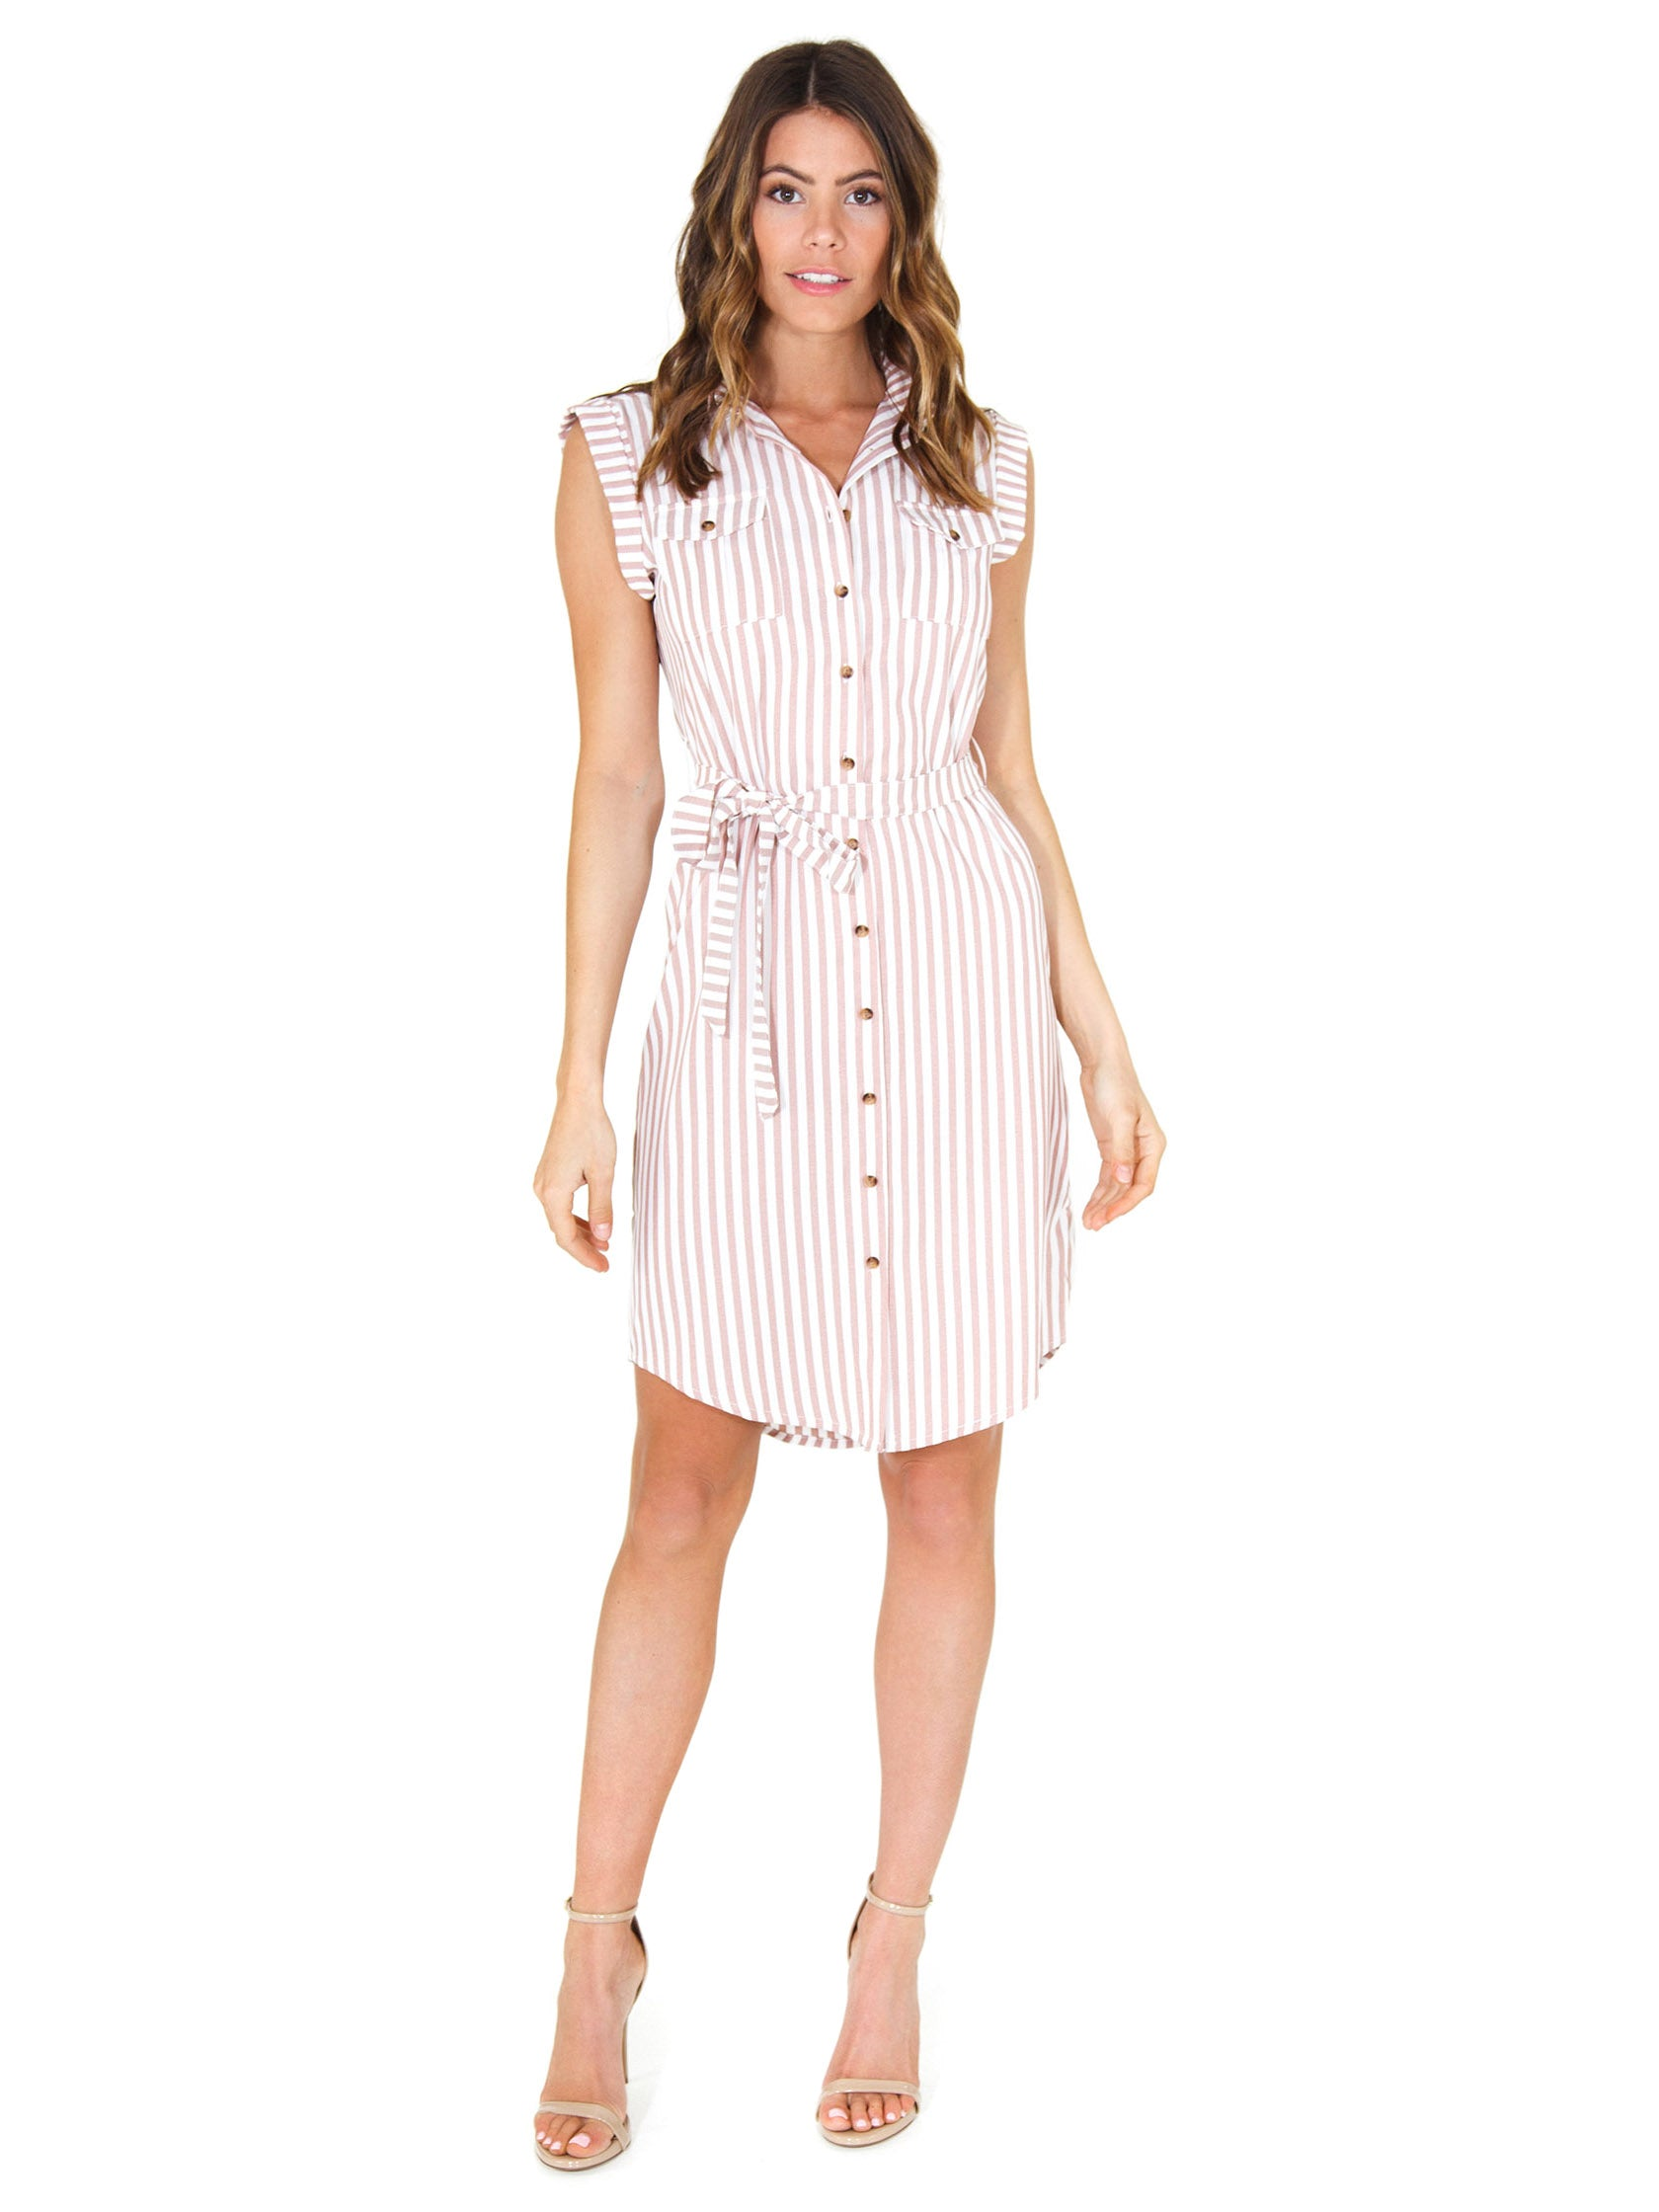 3a317205b148 Women outfit in a dress rental from Bishop + Young called Stripe Shirtdress